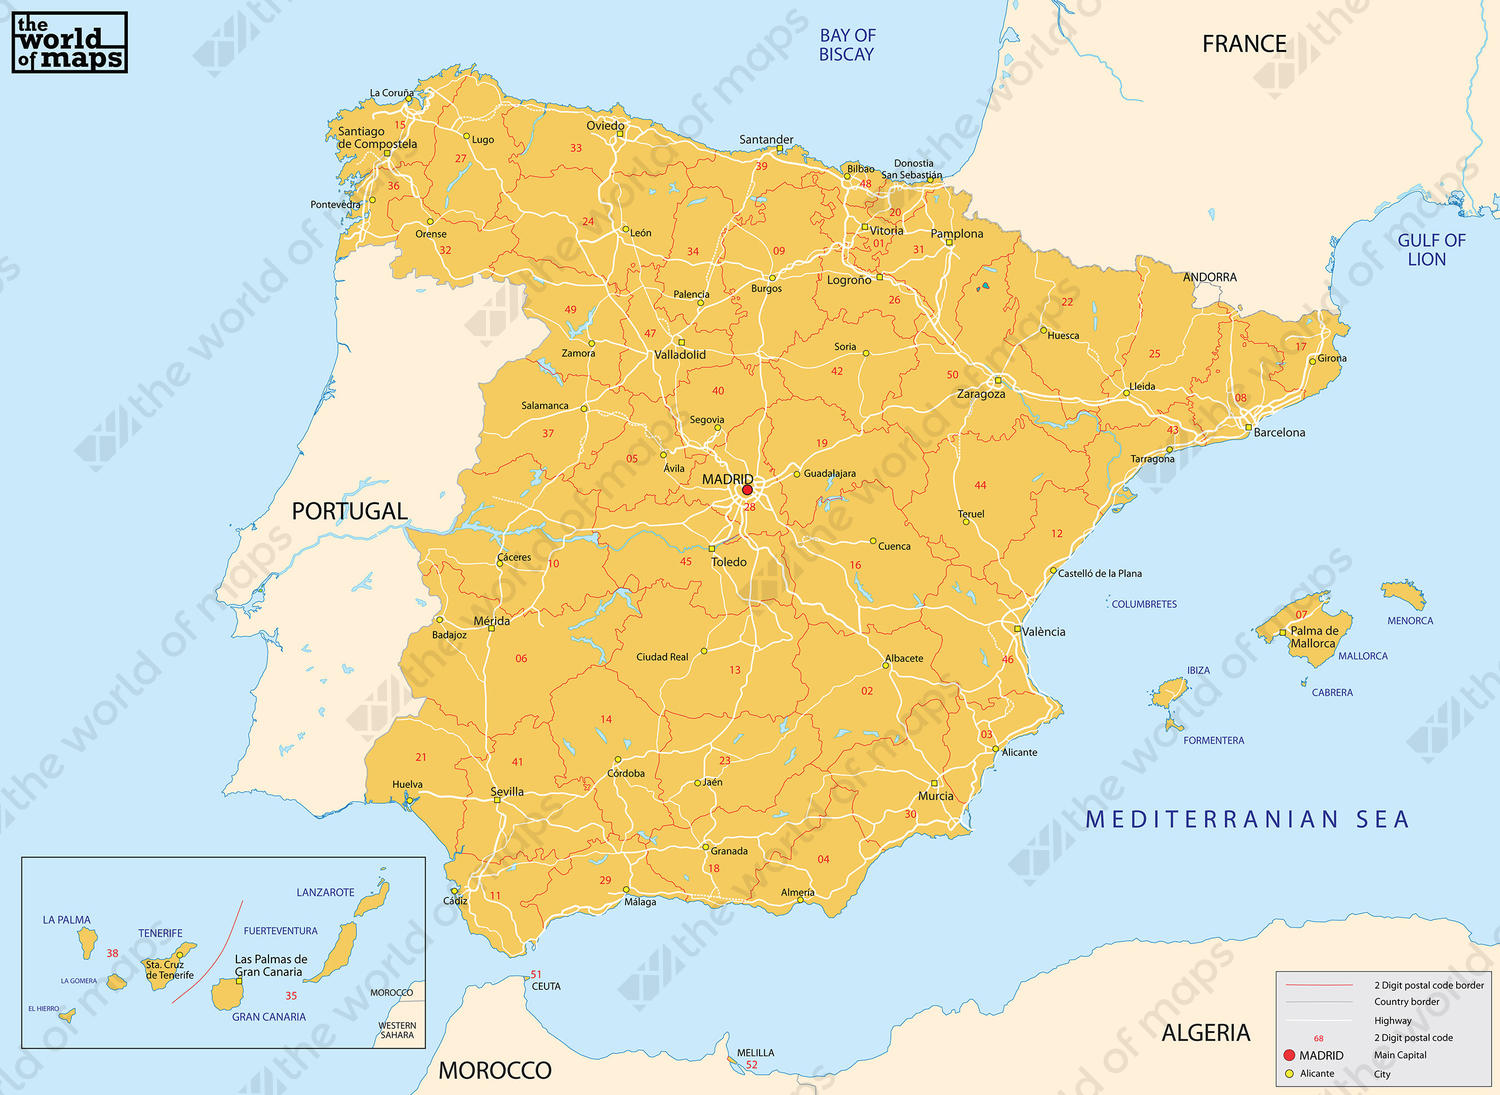 Map Of Spain In The World.Digital Postcode Map Spain 2 Digit 208 The World Of Maps Com